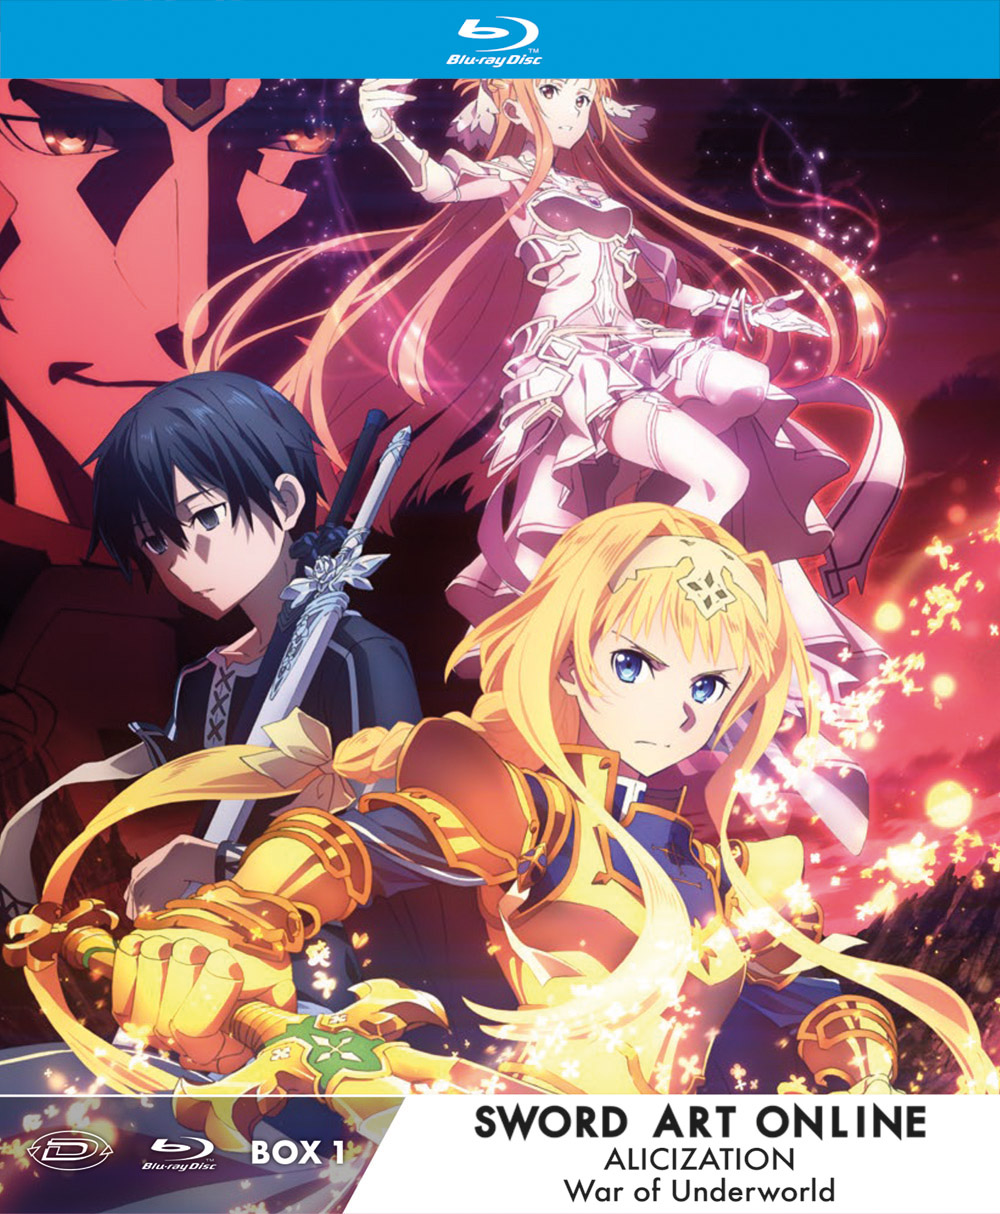 COF.SWORD ART ONLINE ALICIZATION WAR OF UNDERWORLD - LTD BOX #01